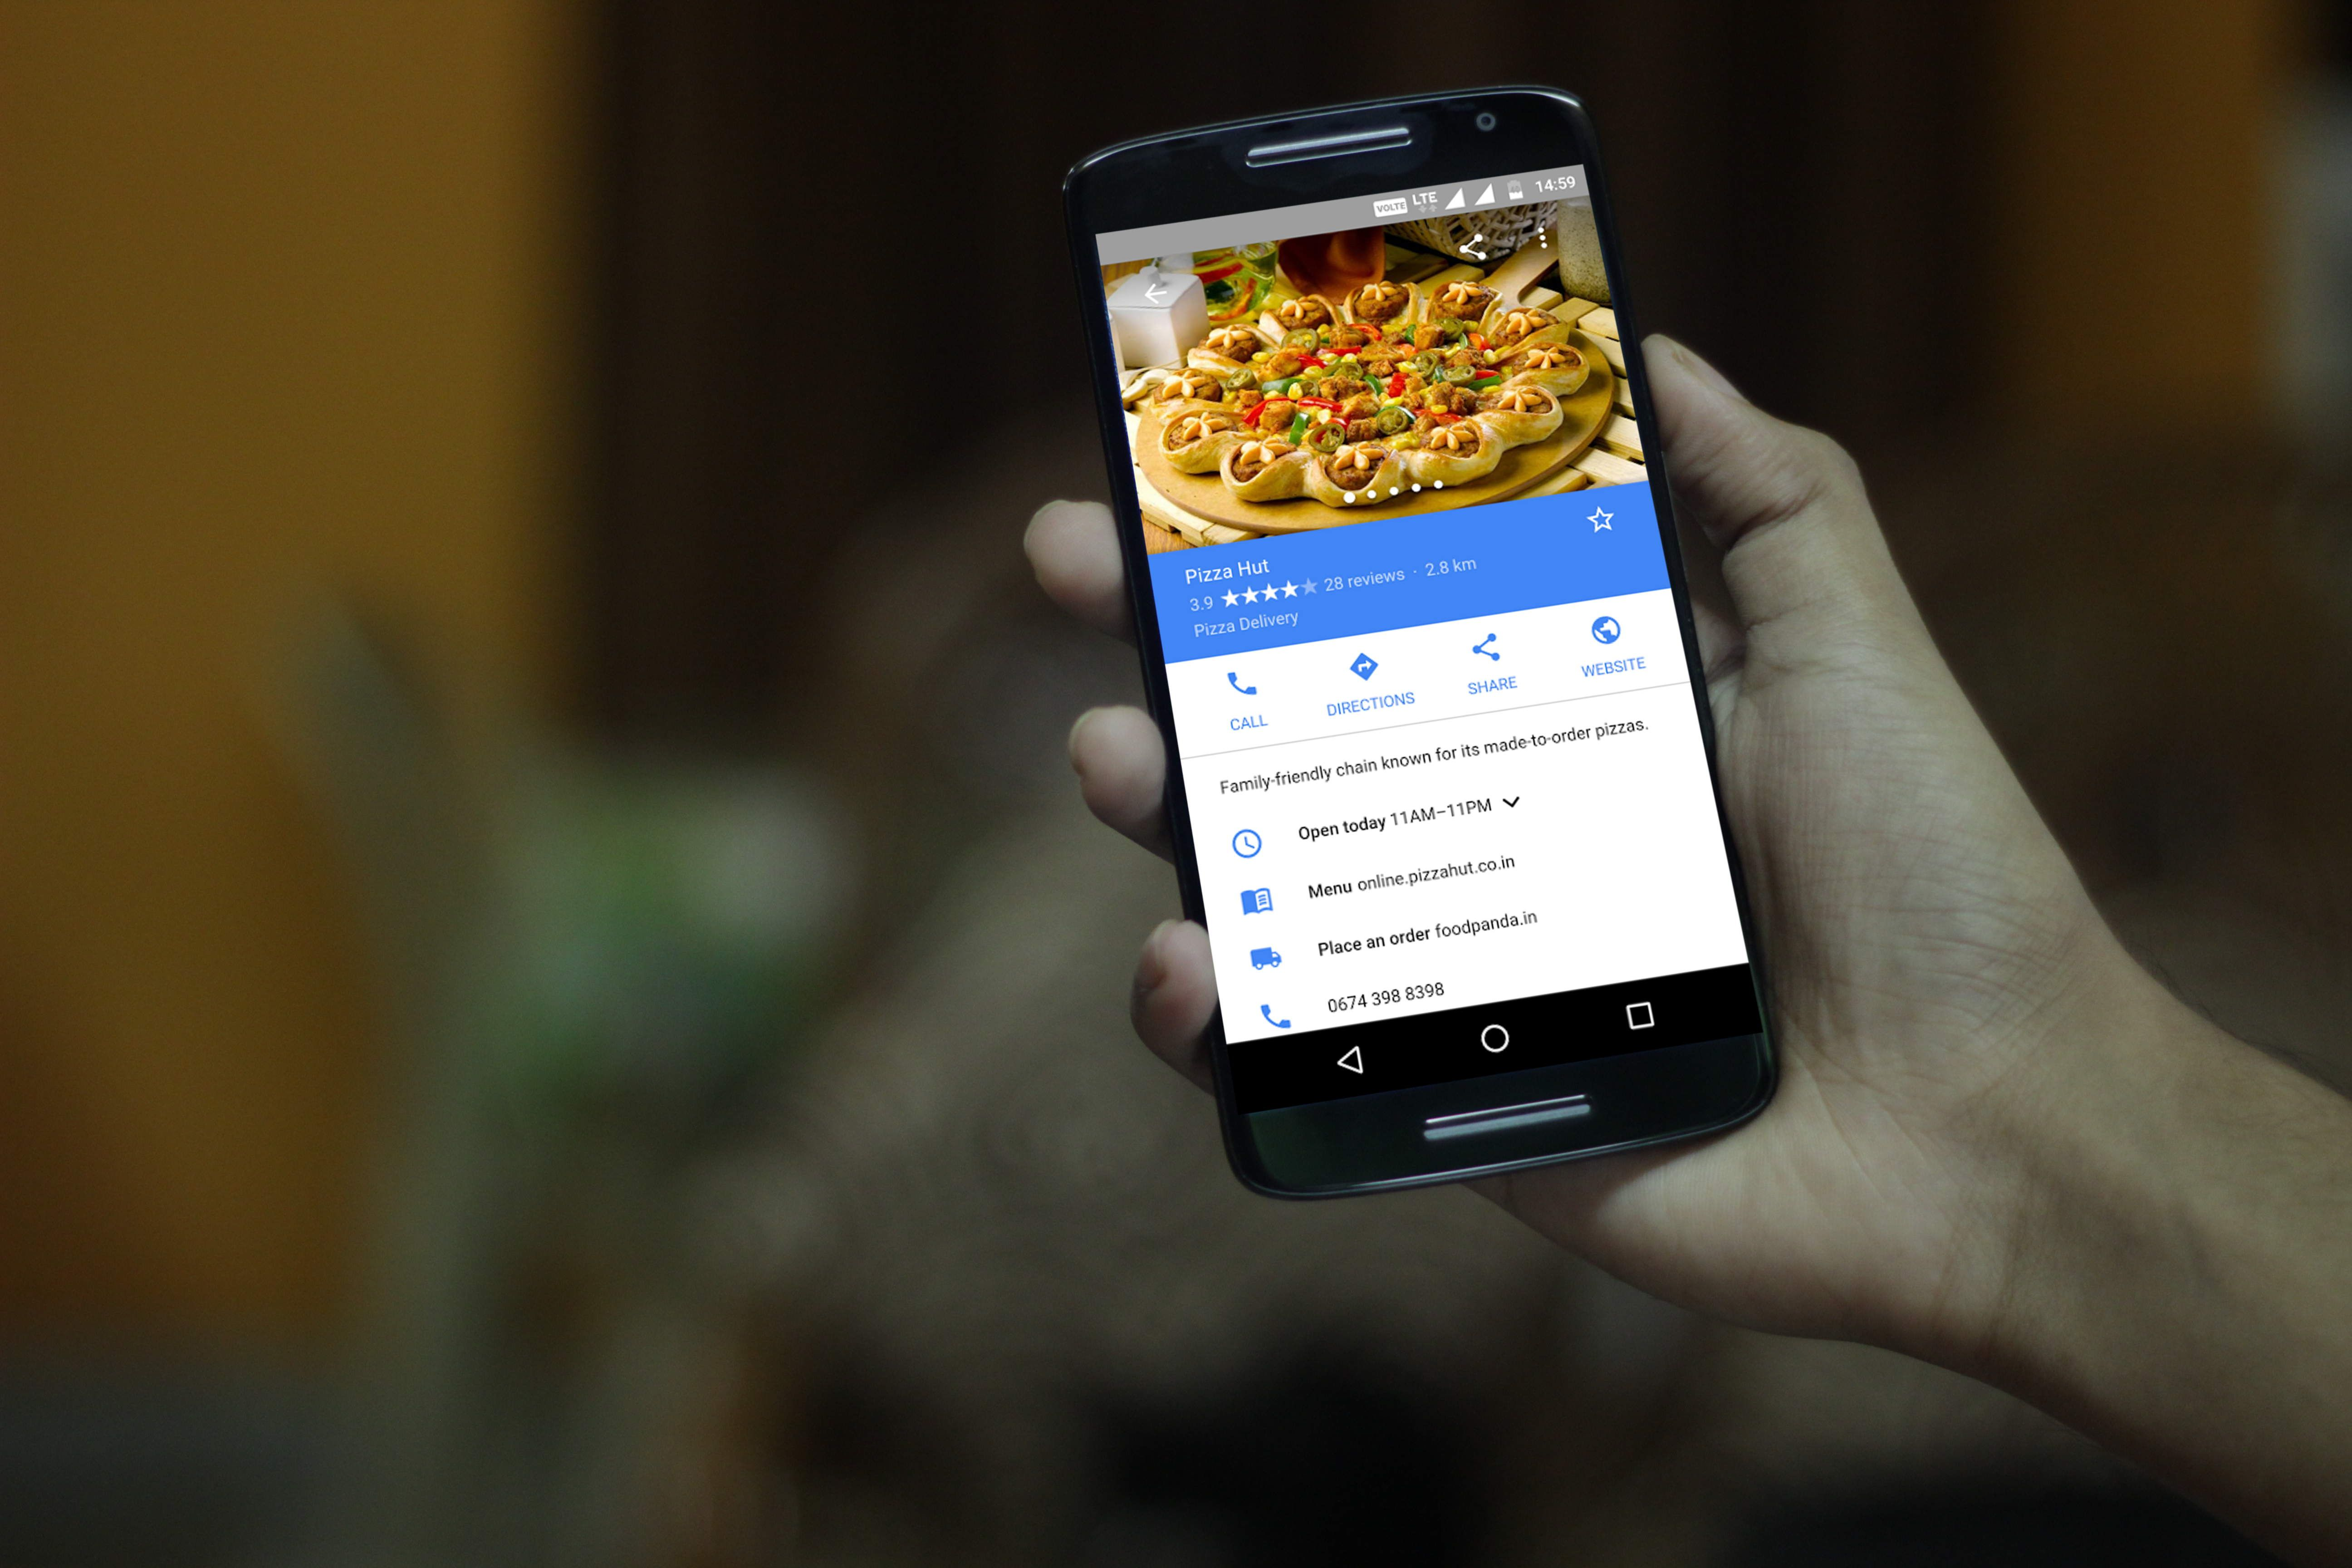 Food near me how to find restaurant for quick food